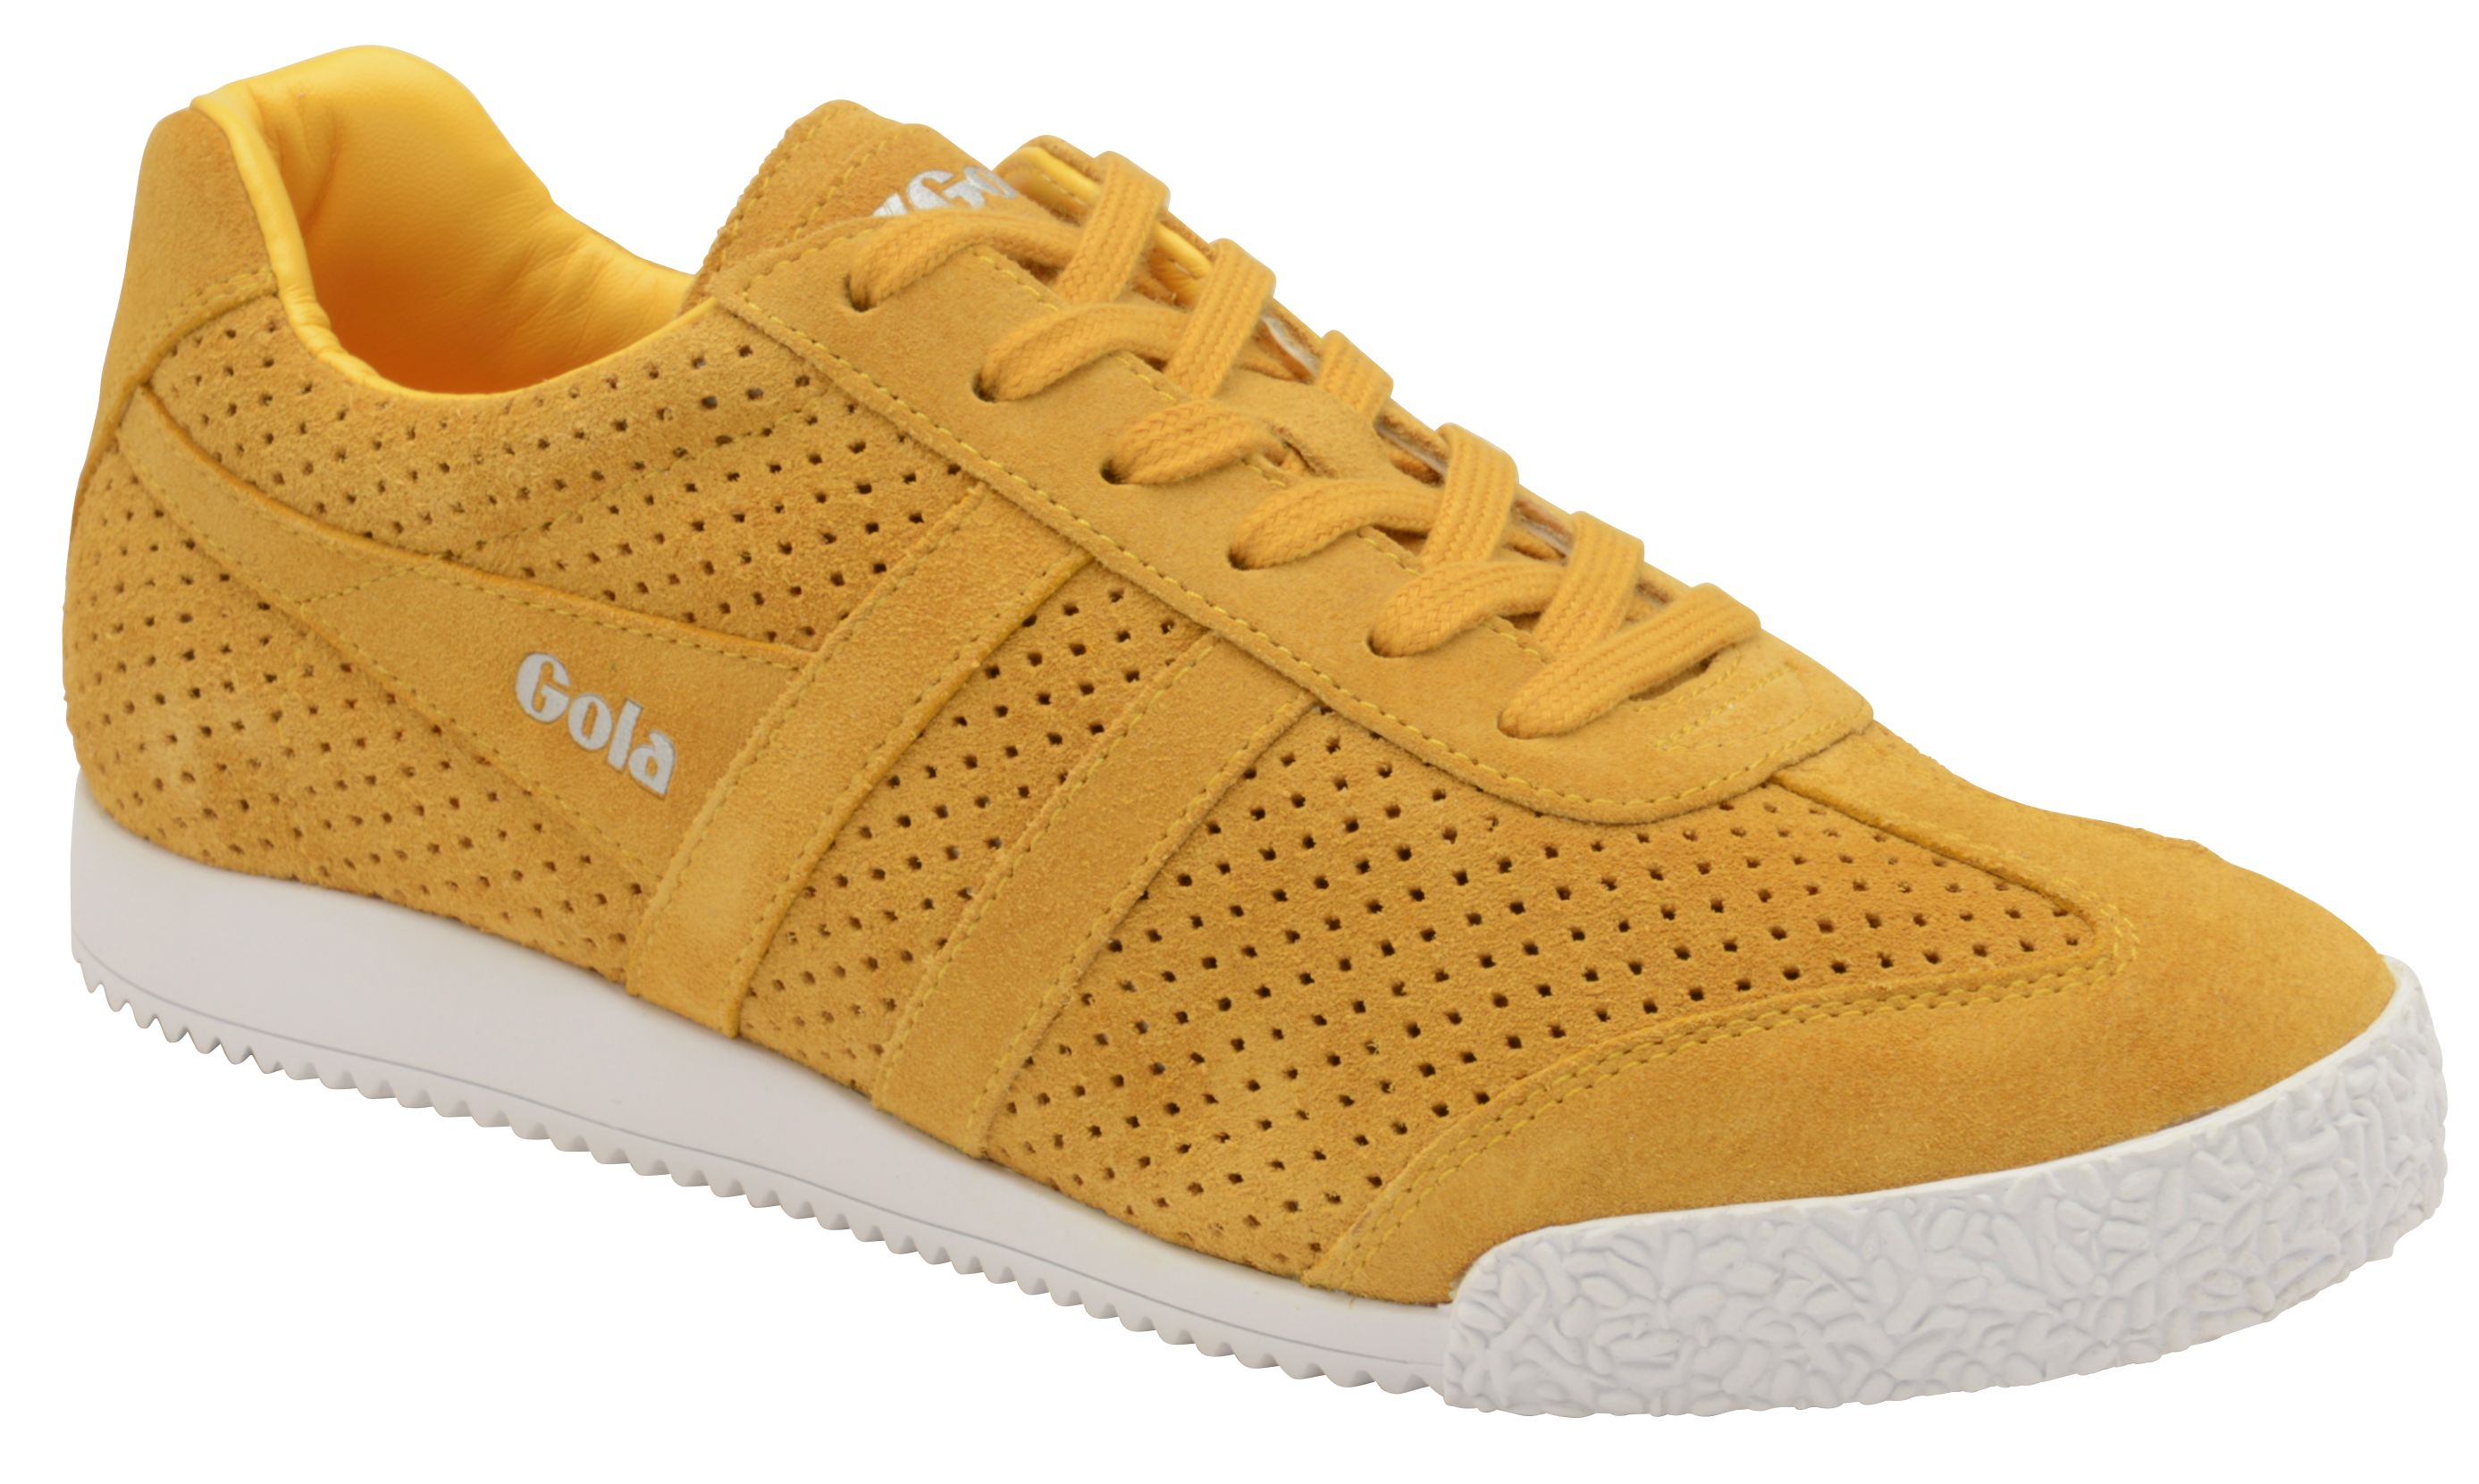 Gola Harrier Squared Lace Up Trainers, Yellow